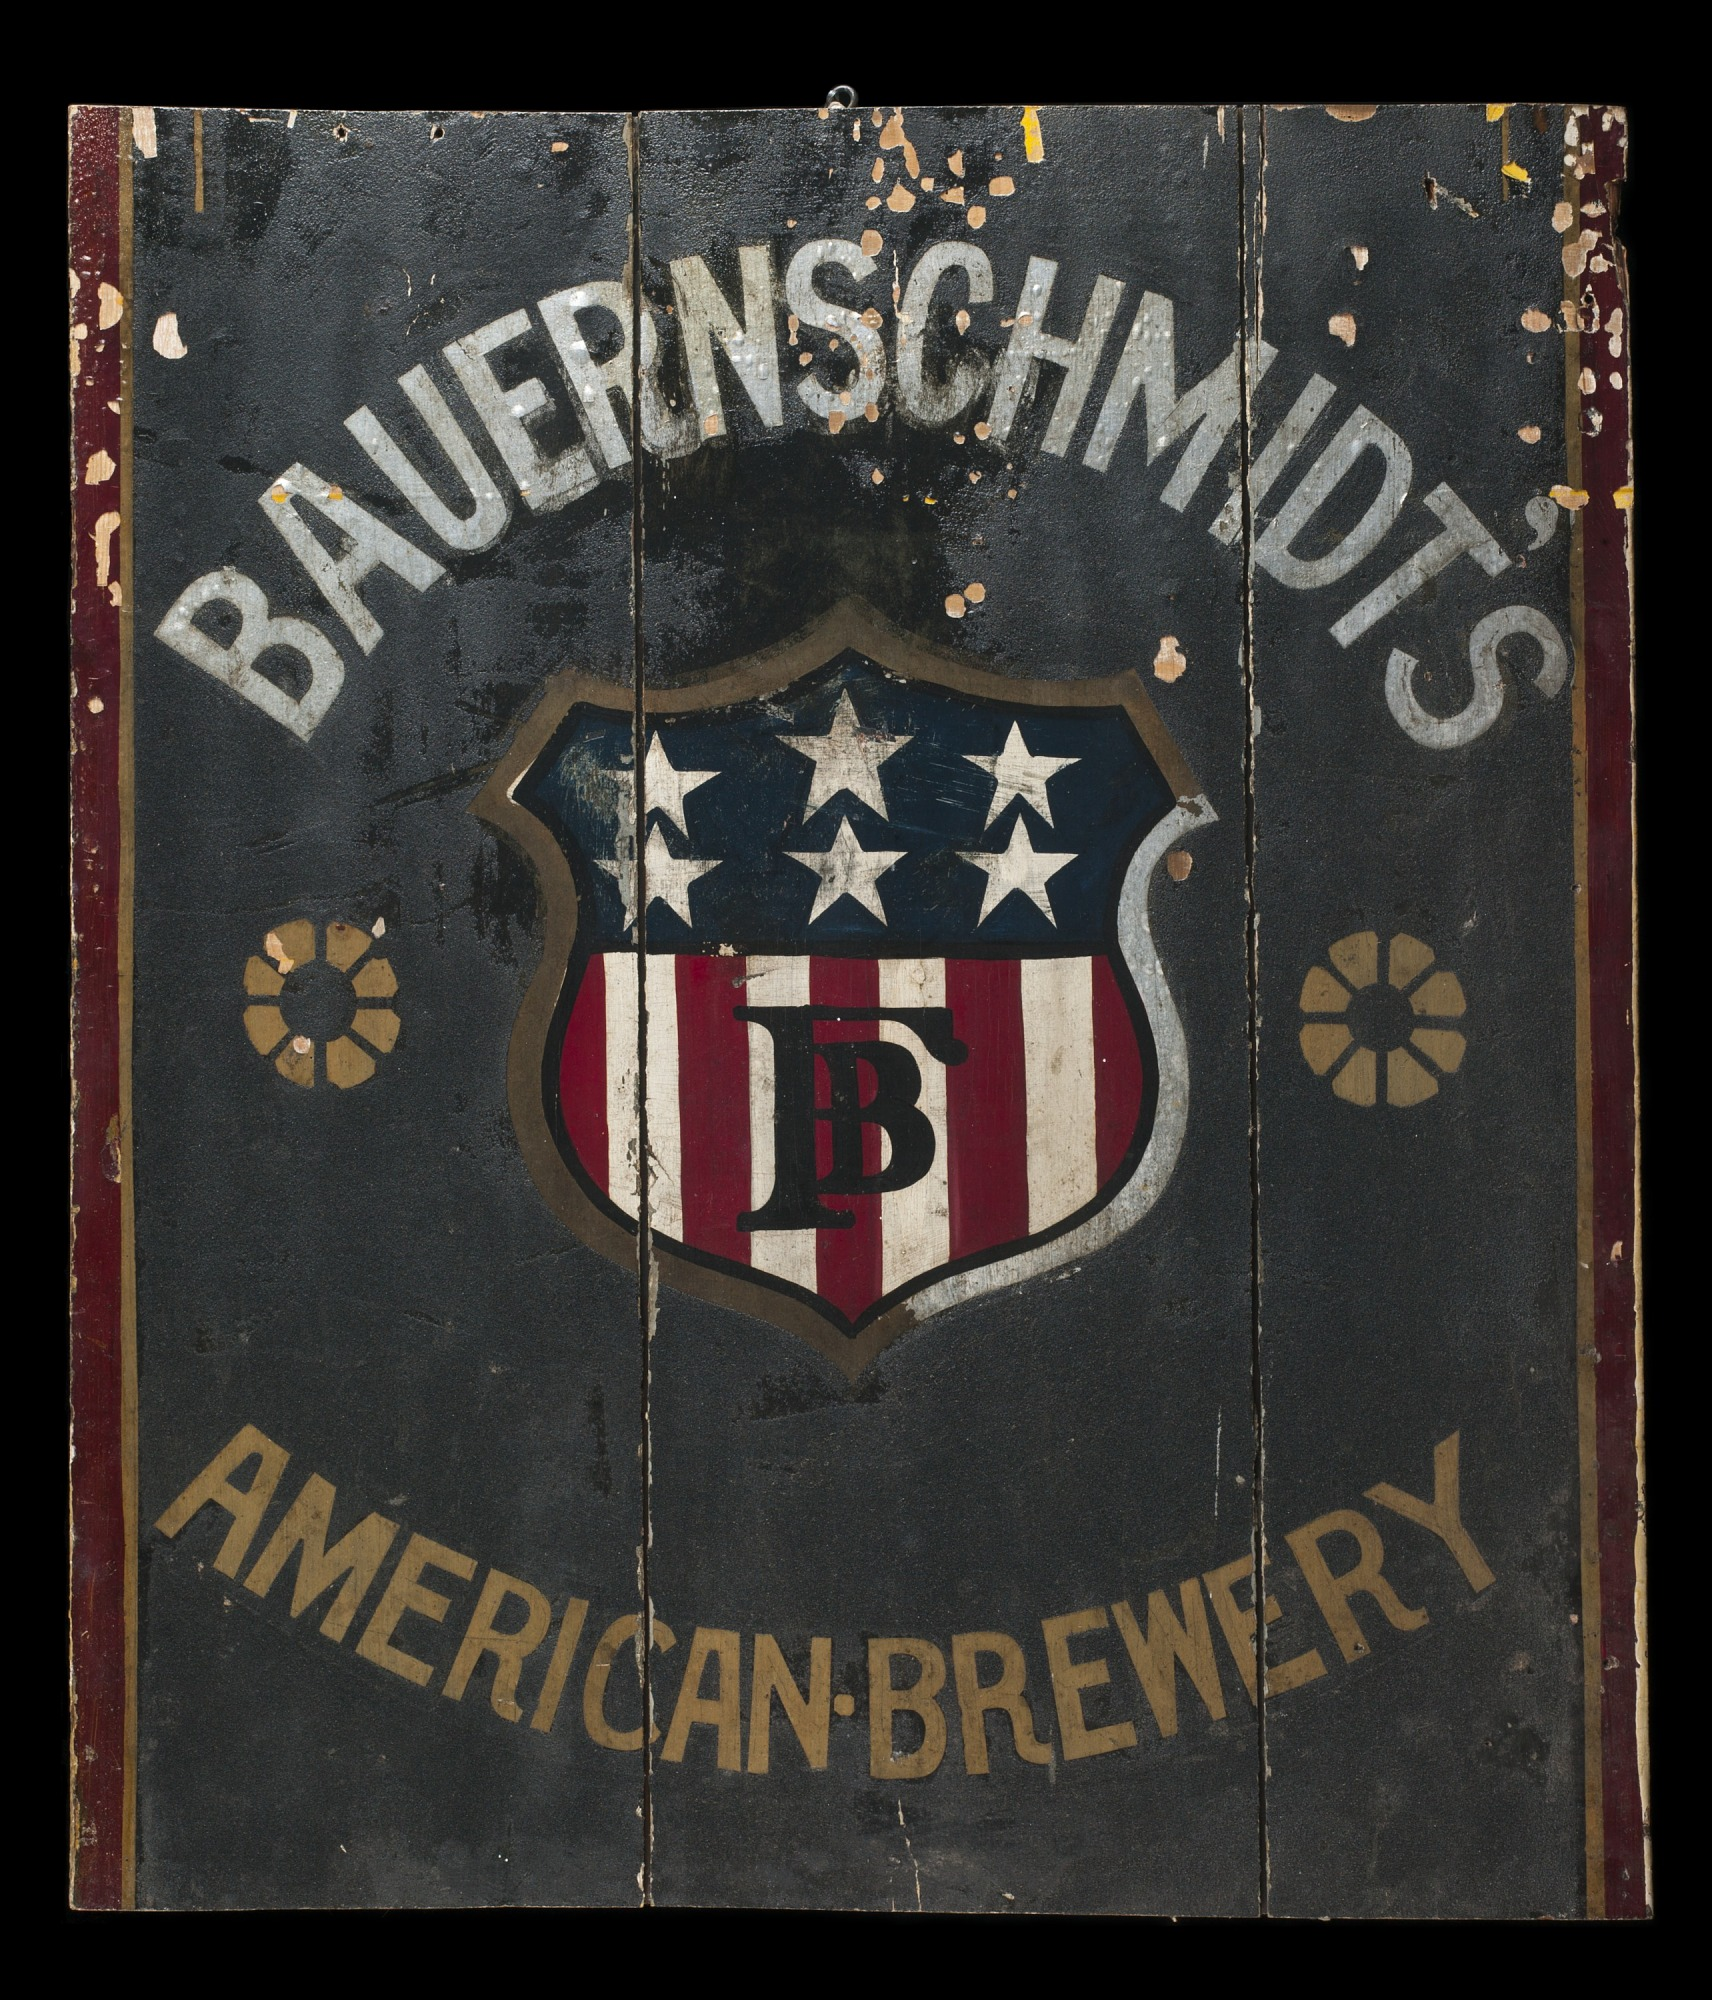 """images for """"American Brewery"""" Sign"""